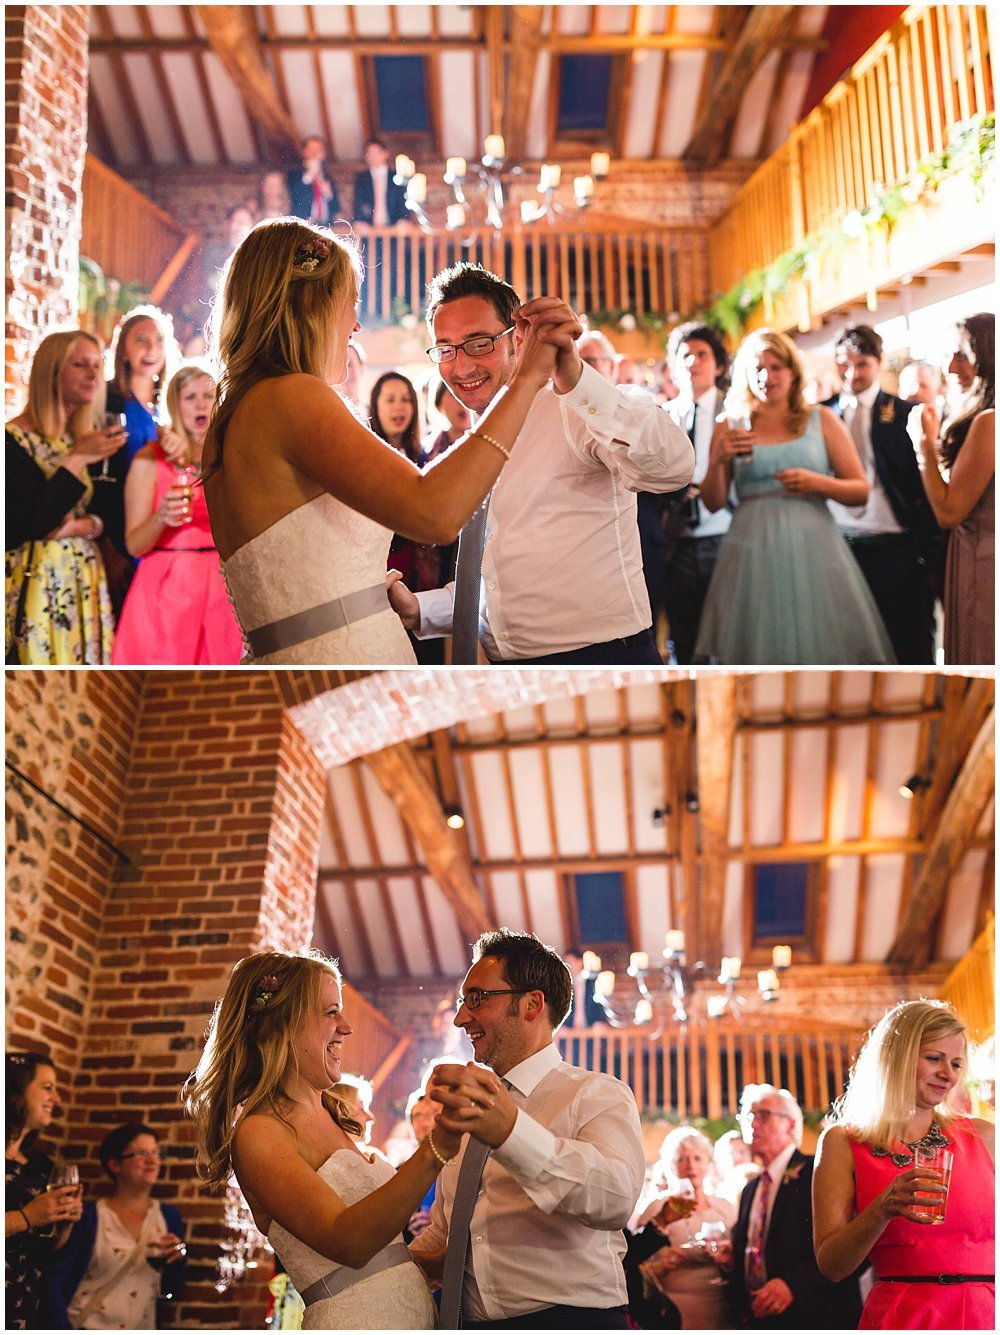 MEGHAN AND JAMES CHAUCER BARN WEDDING - NORFOLK AND NORWICH WEDDING PHOTOGRAPHER 55